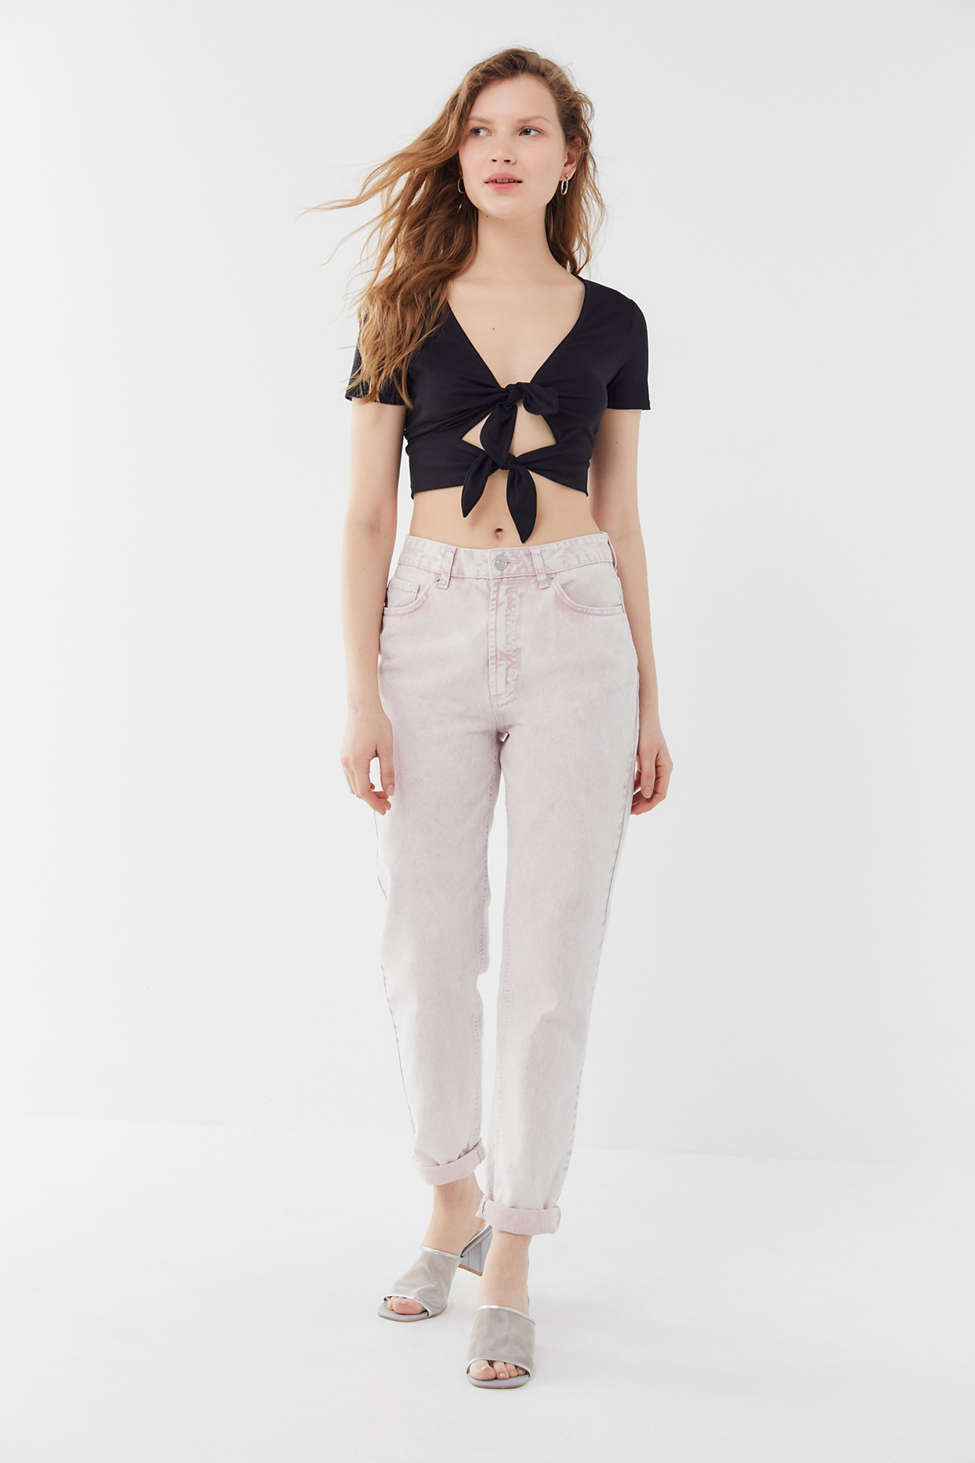 Uo Leighton Double Tie Front Cropped Top by Urban Outfitters